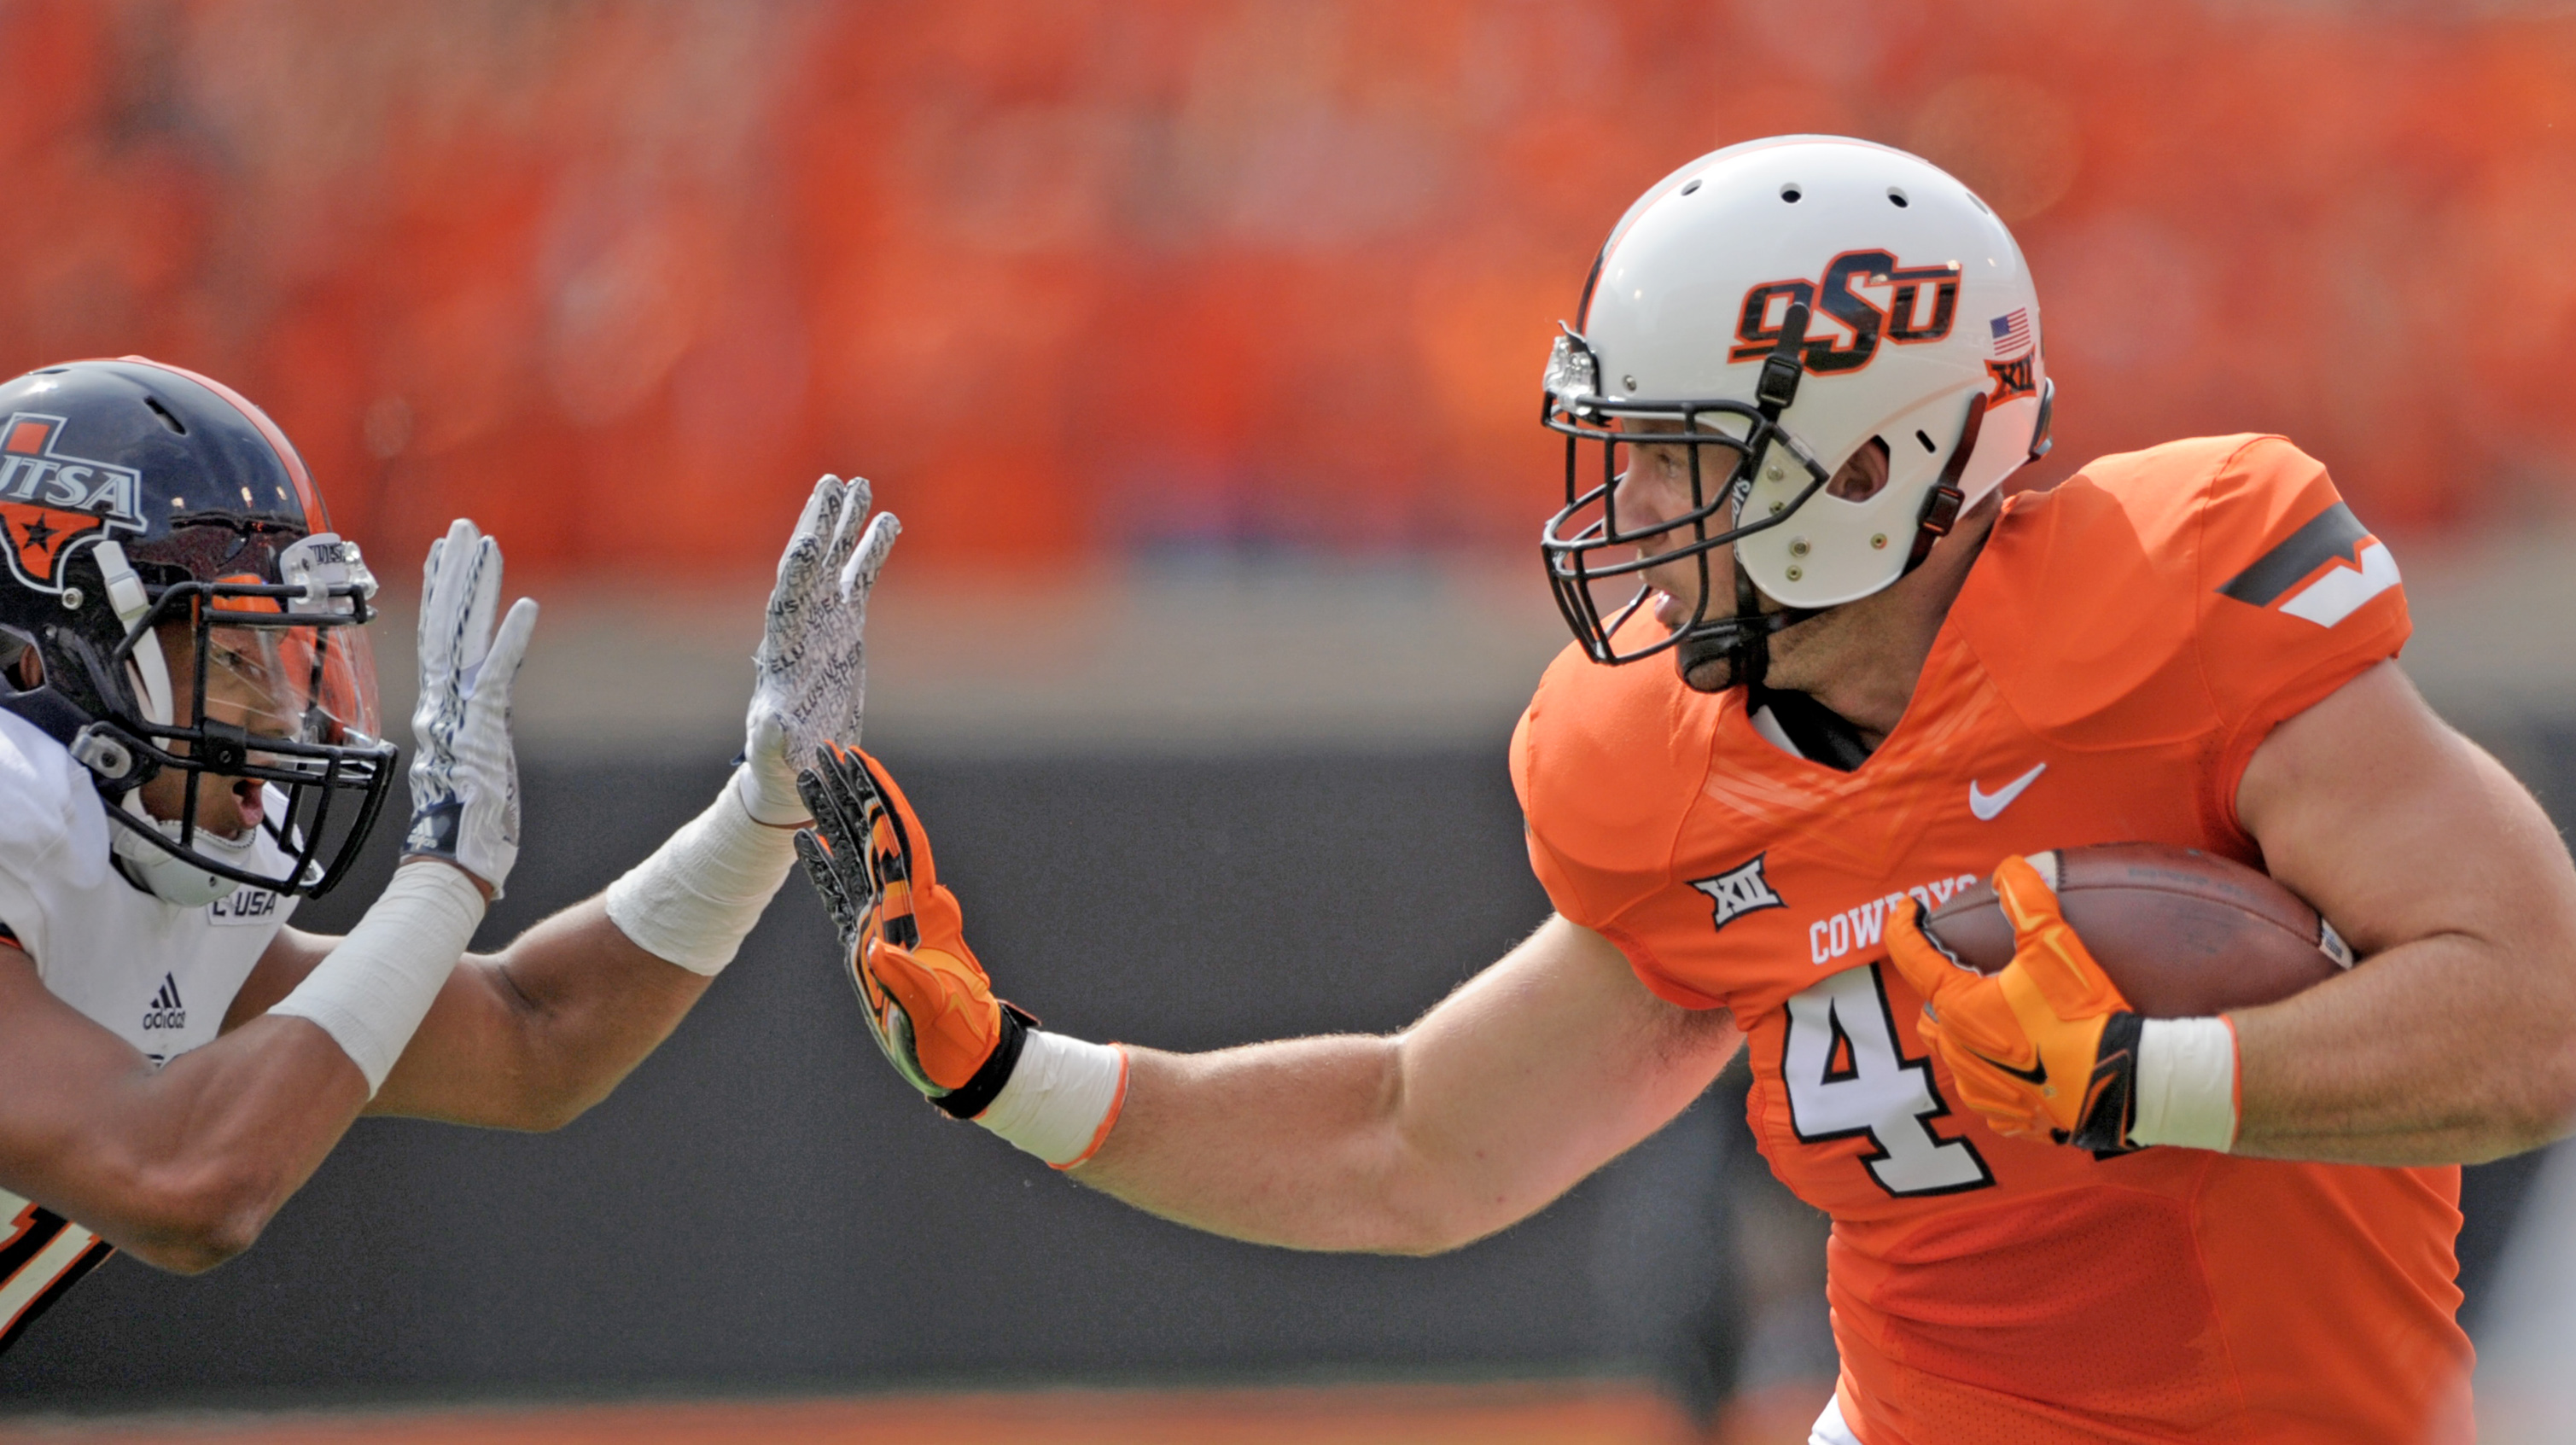 Oklahoma State fullback Jeremy Seaton, right, fends off UTSA safety Nate Gaines for a 45 yard reception during the first quarter of an NCAA college football game in Stillwater, Okla., Saturday, Sept. 19, 2015. (AP Photo/Brody Schmidt)